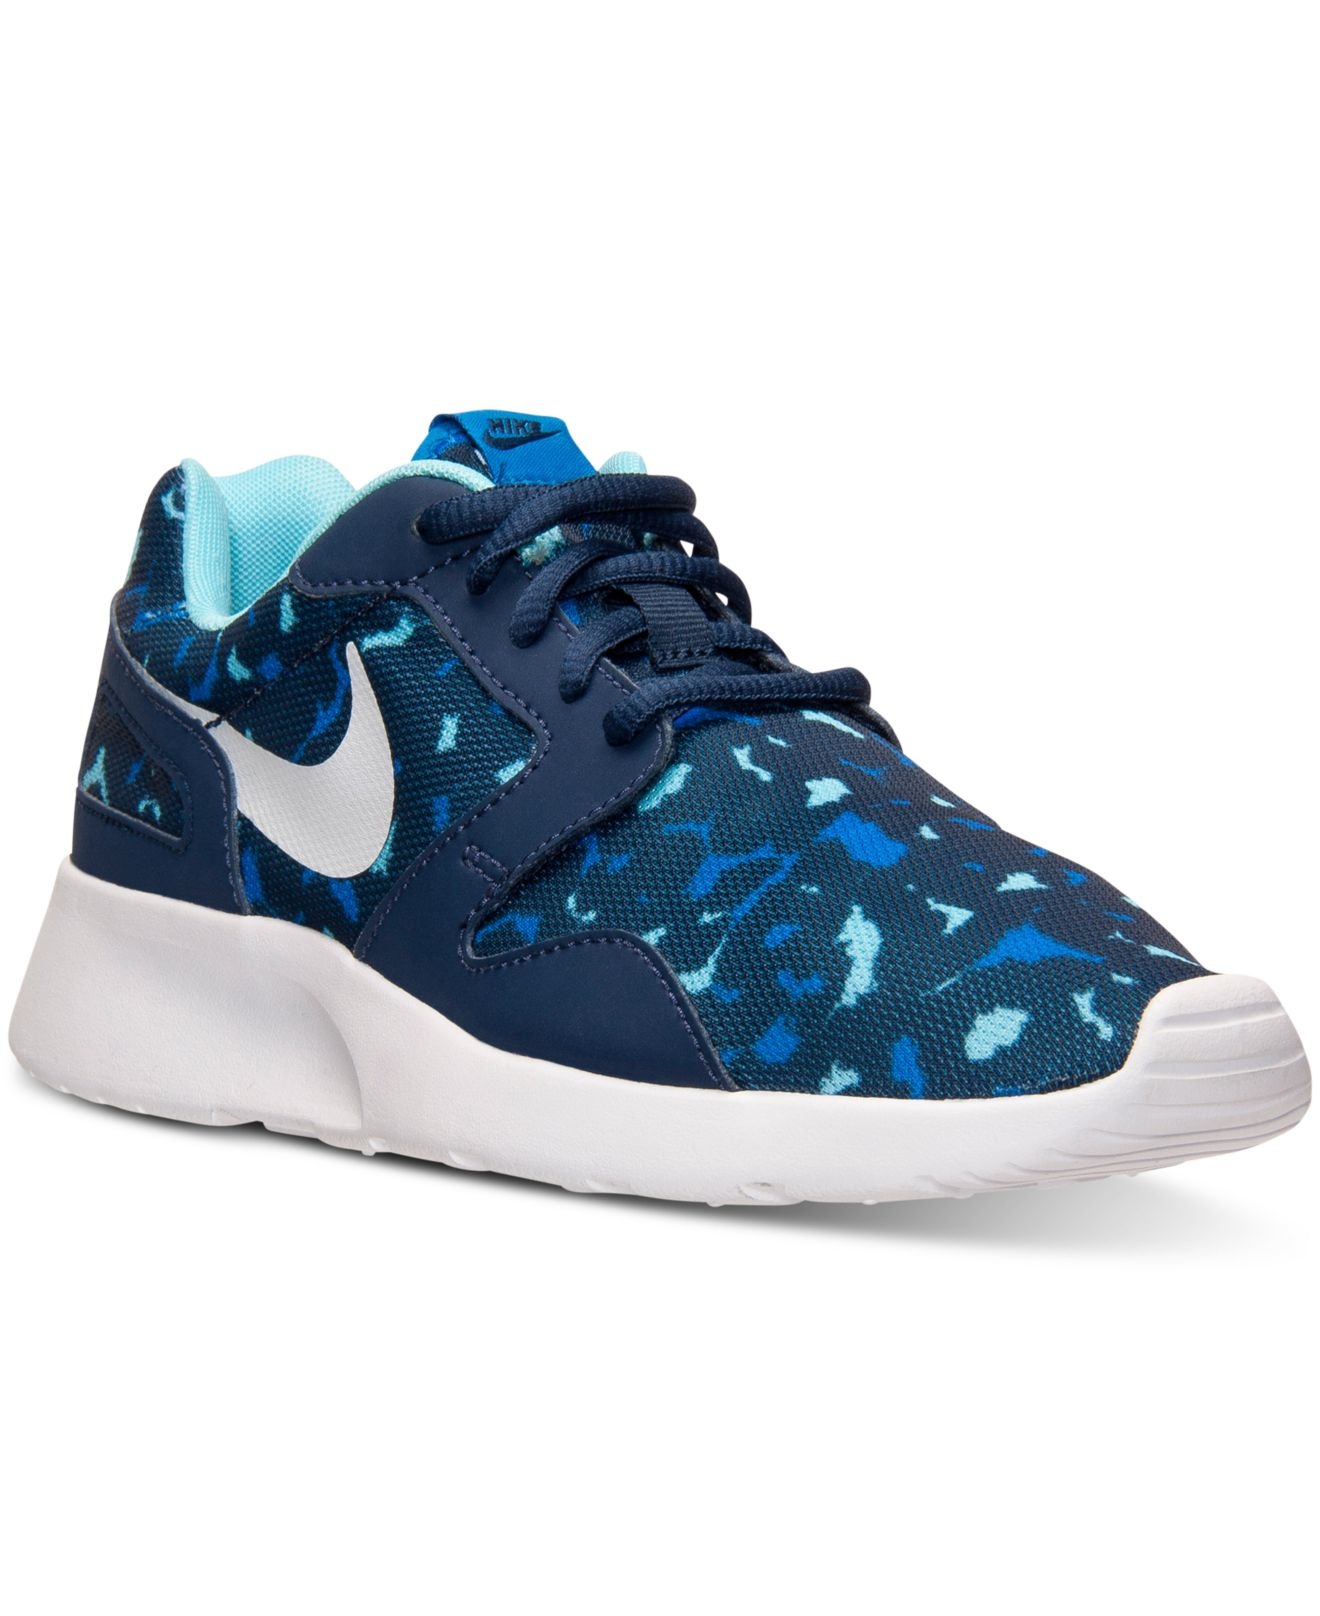 f6cf79693497 ... where can i buy lyst nike womens kaishi print casual sneakers from  finish line in da90c